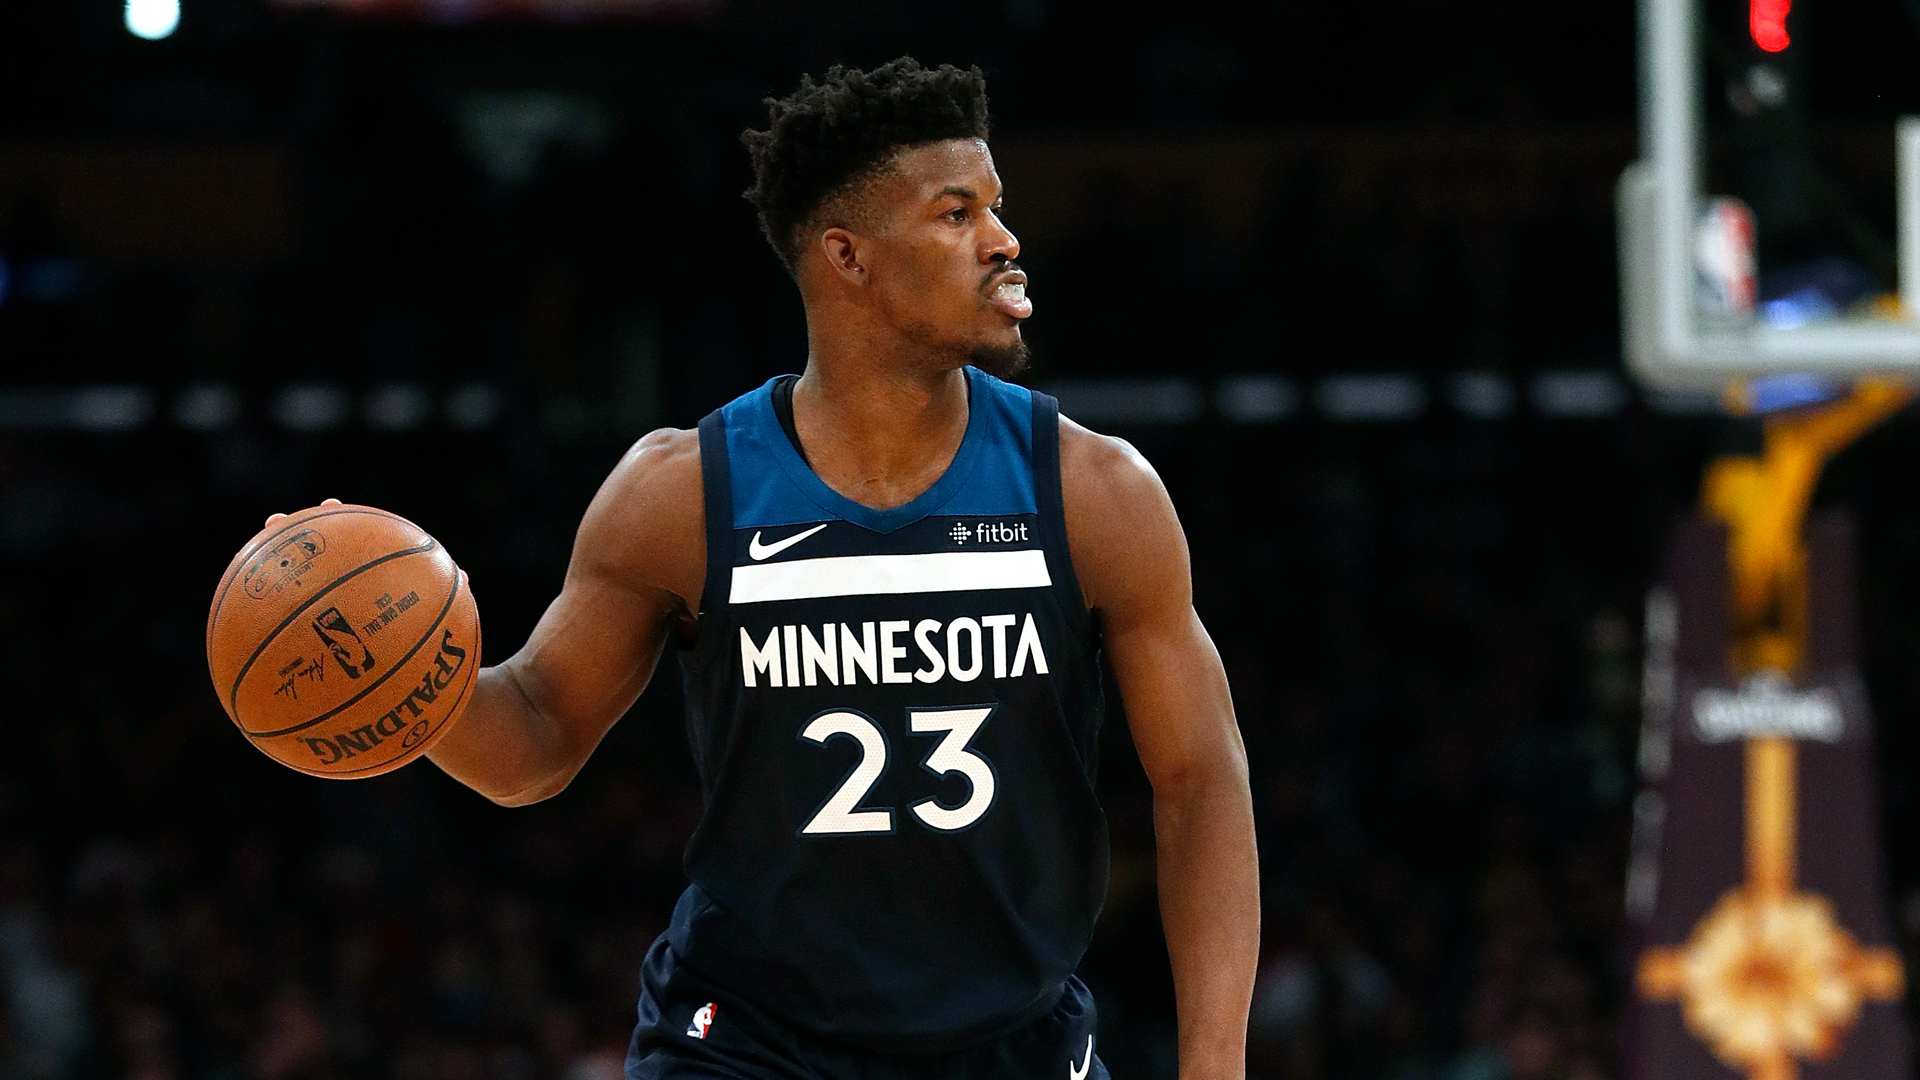 Jimmy Butler helped off court with apparent knee injury